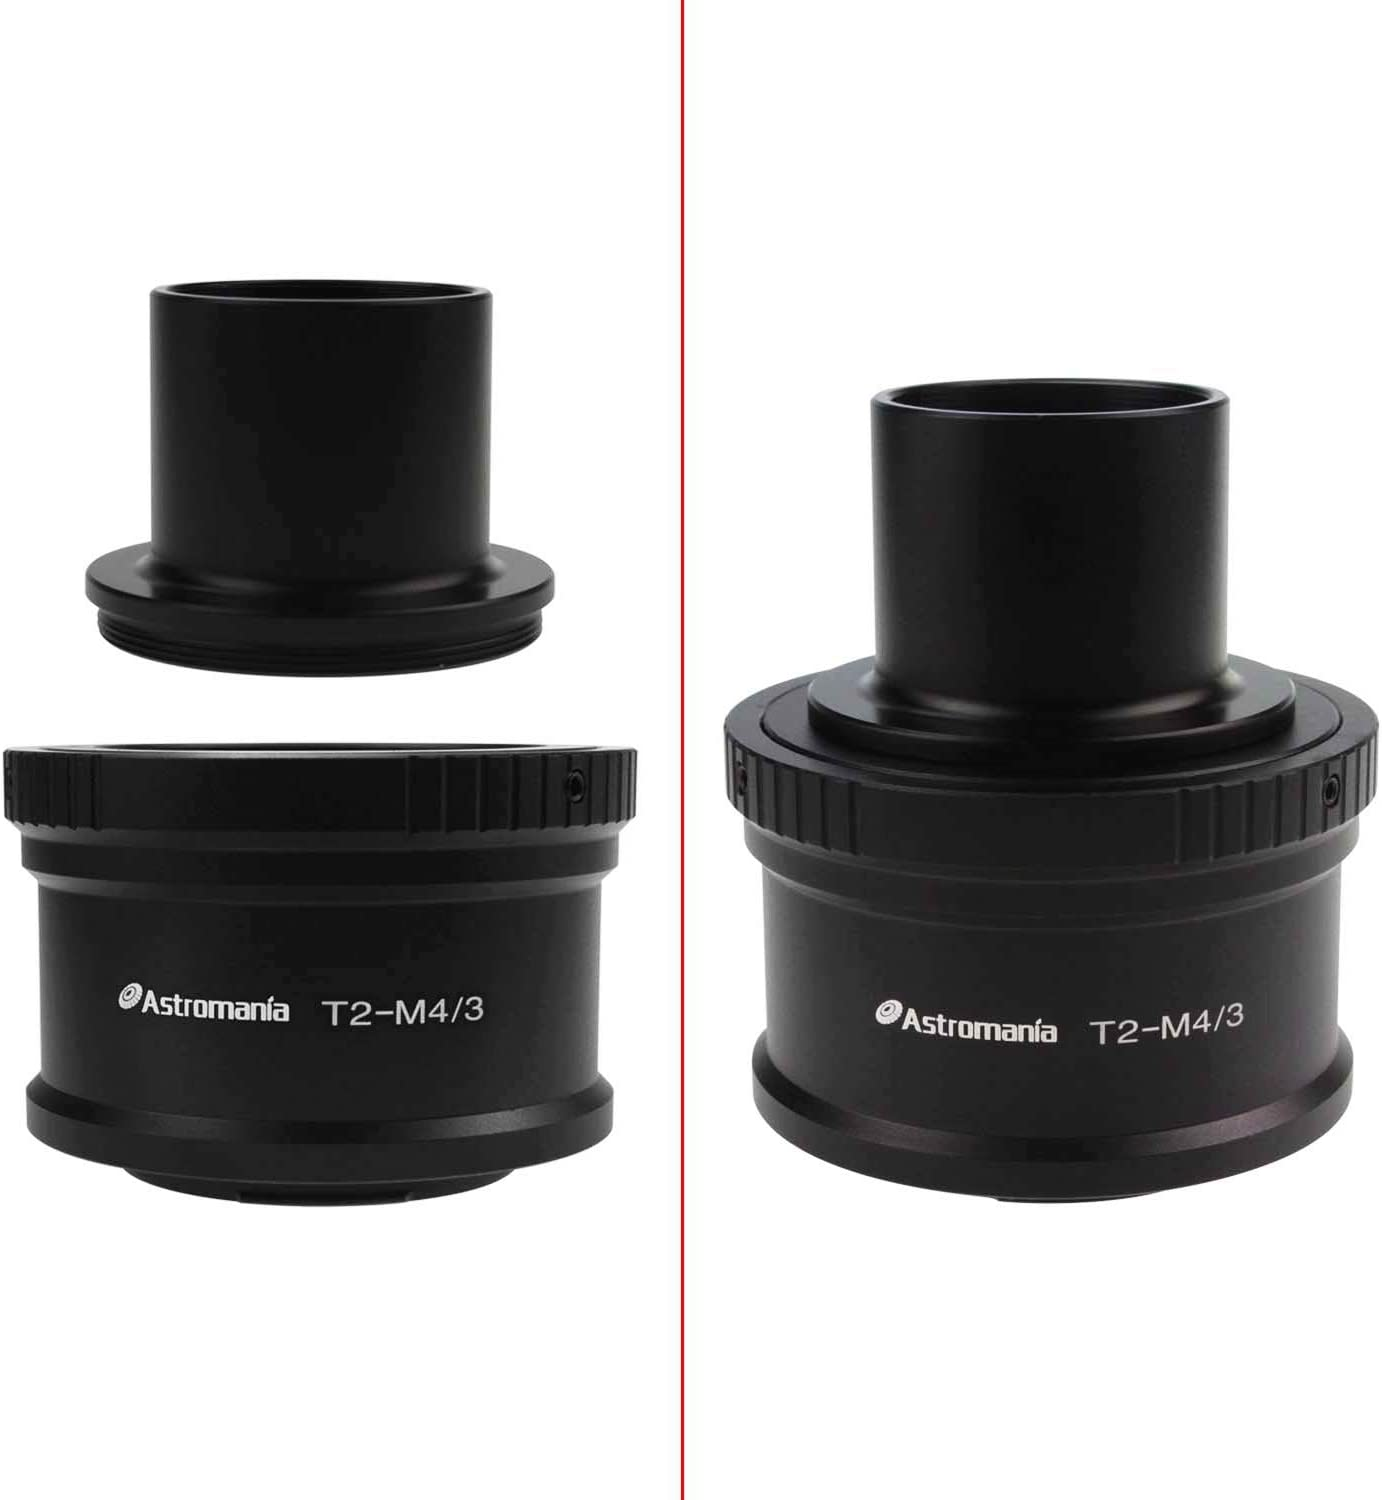 Astromania T//T2 Lens Mount Adapter Ring for Sony-NEX Camera Precision machined T2 Adaptor Ring for All Sony NEX Compact System Cameras